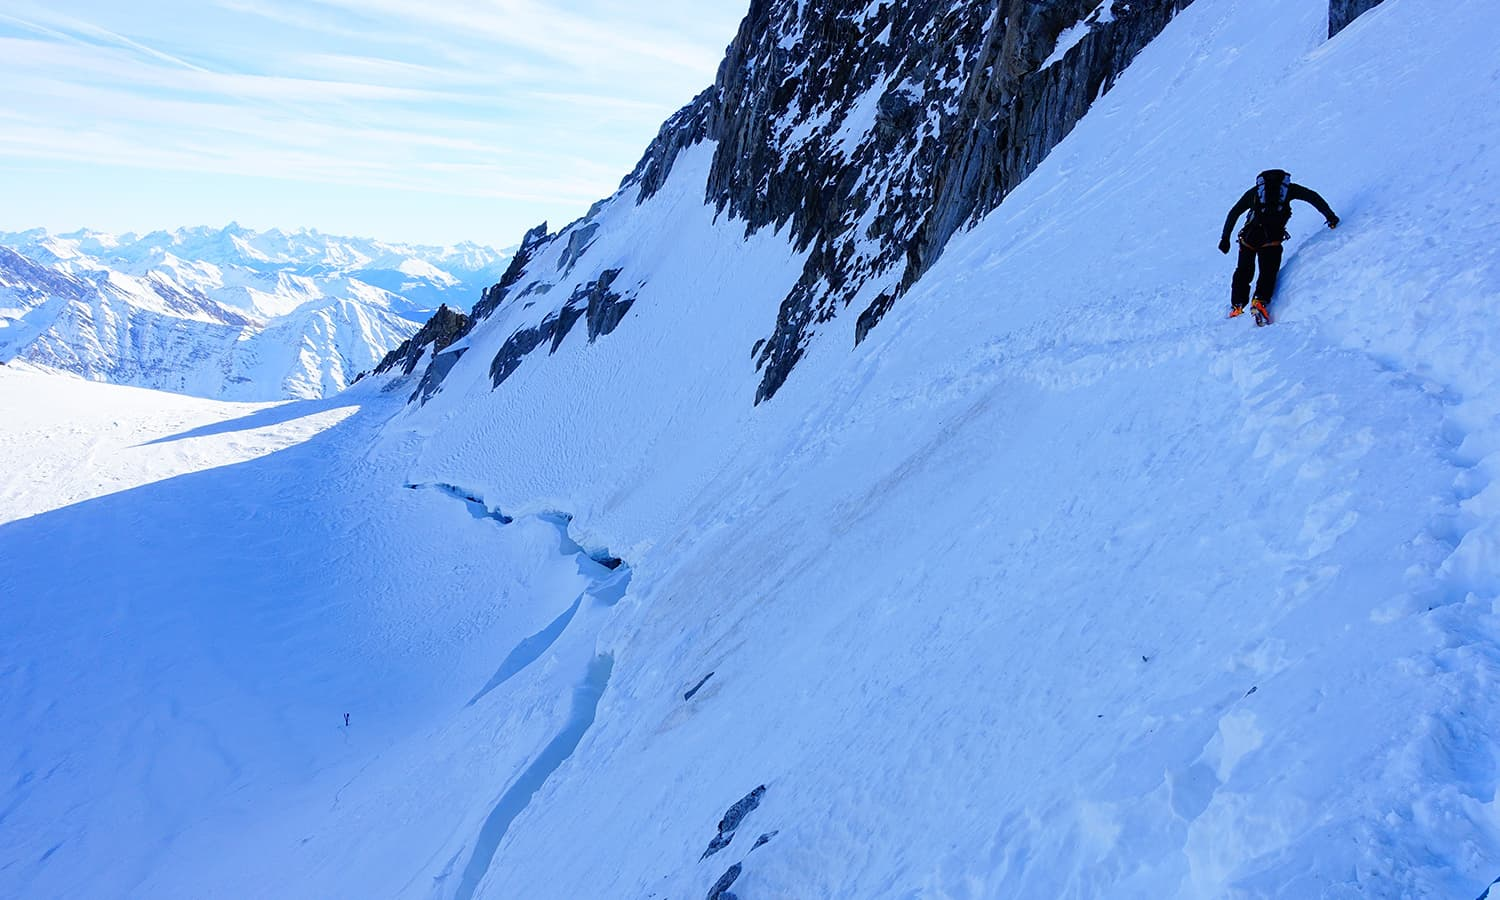 This is where I encountered a crevasse.